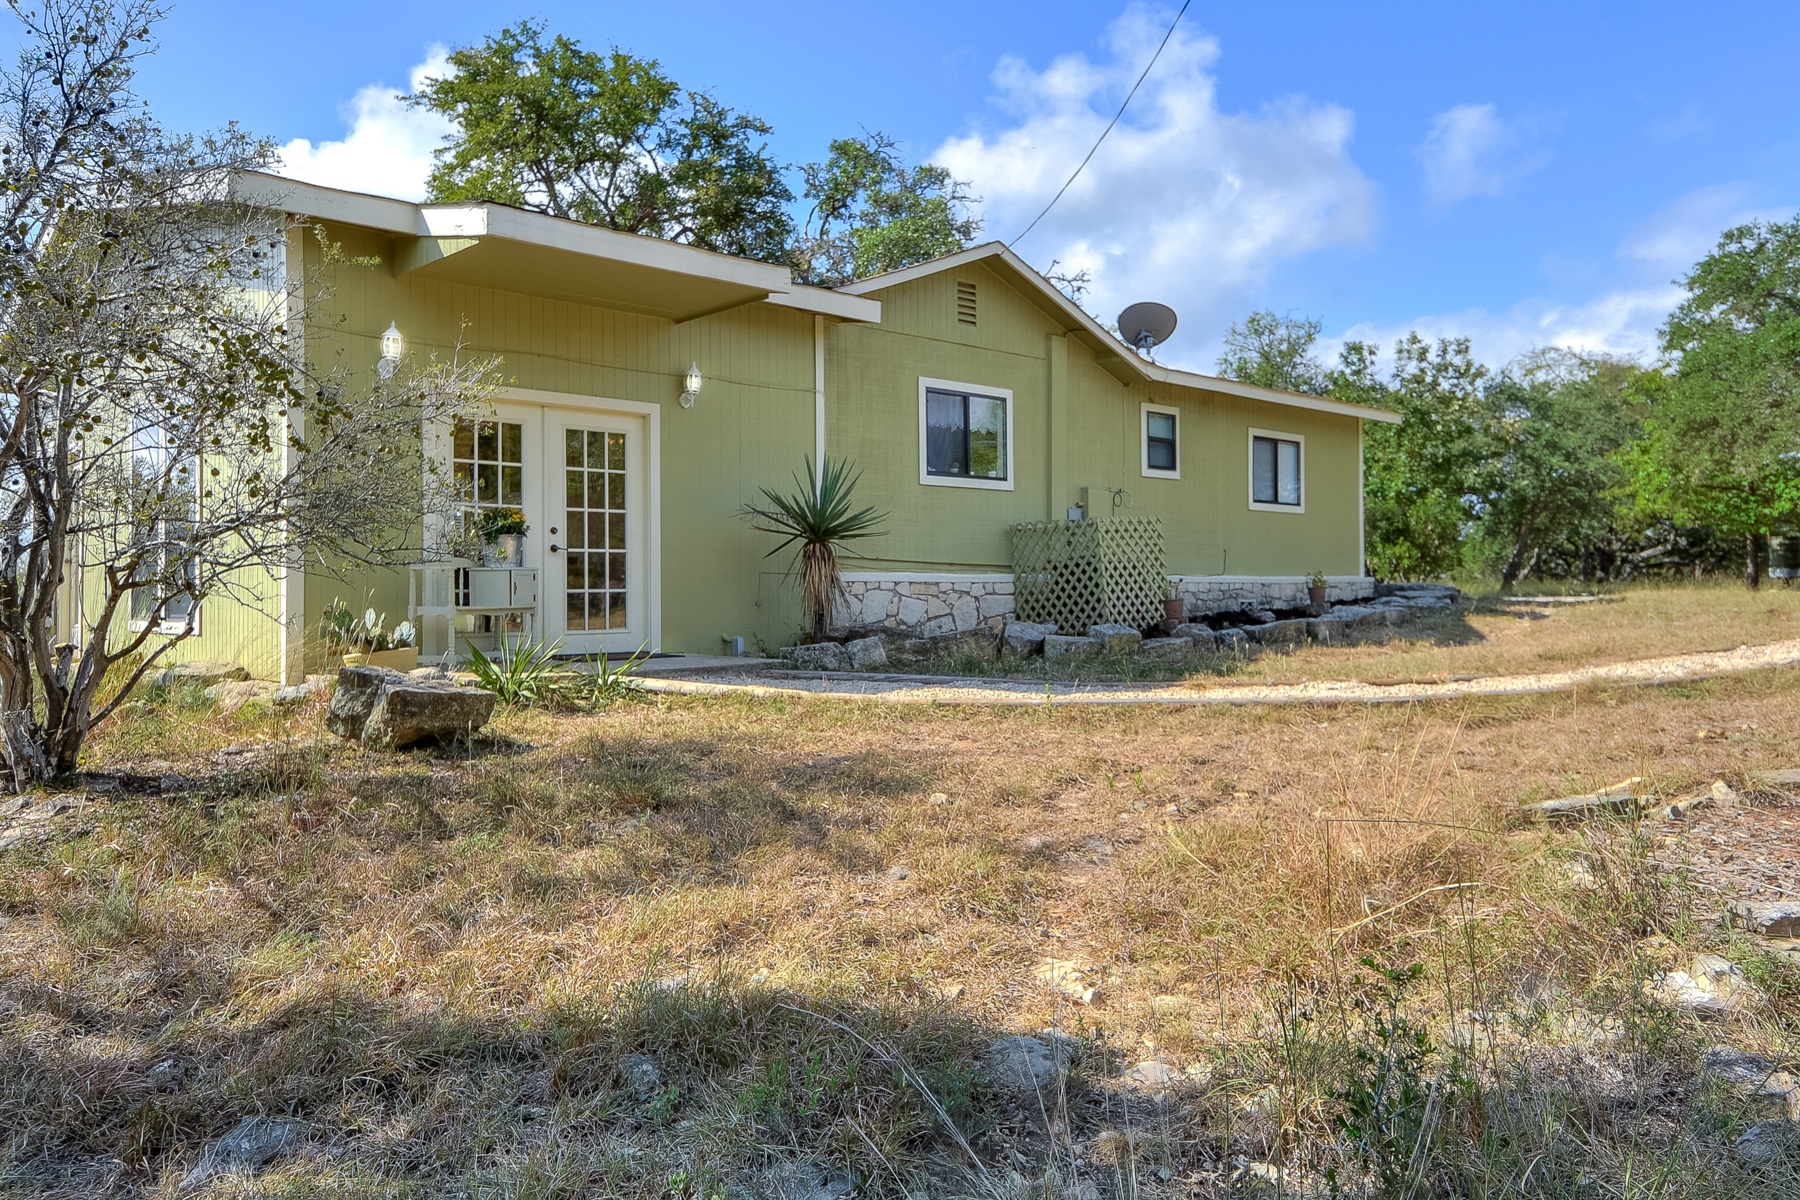 Additional photo for property listing at Stunning Views From Spacious Home on Over 5 Acres 113 Valley View Trl Comfort, Texas 78013 United States